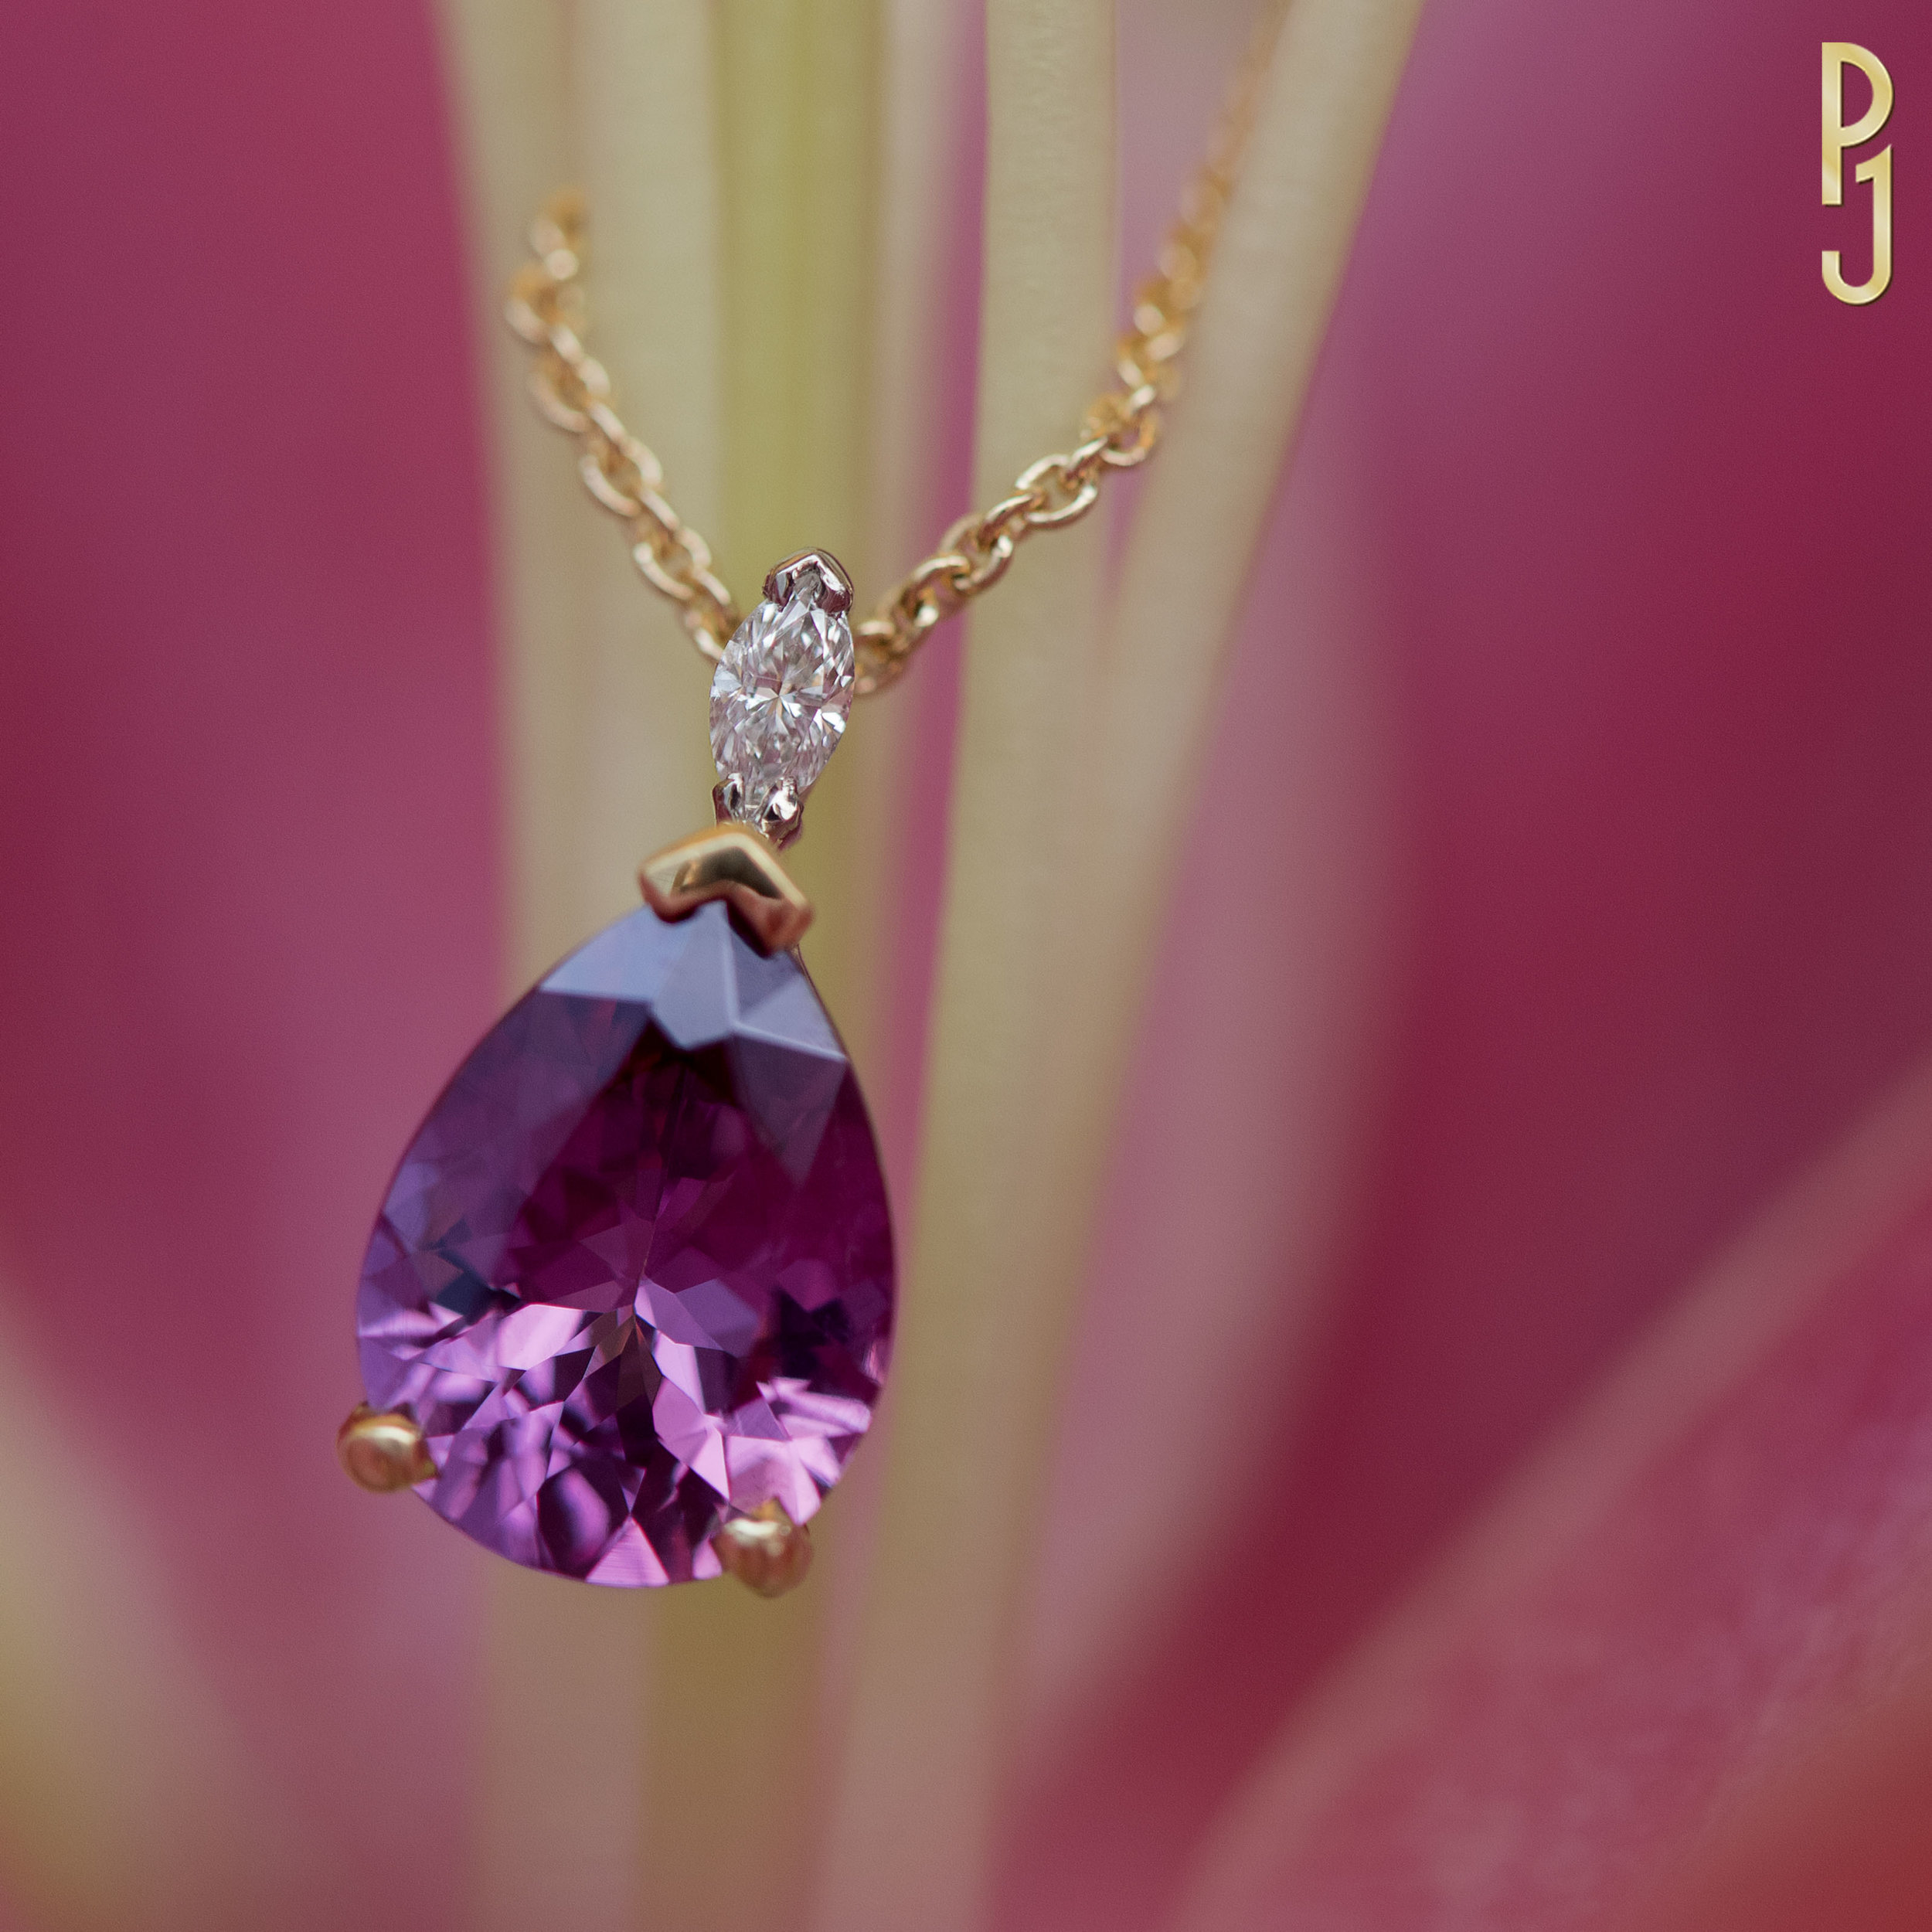 PURPLE GARNET - Pendant: Purple garnet, pear shape, 1.87ct. plus one marquise diamond = 5pts. set in 18ct. yellow and white gold.Designed and handcrafted by Philip.